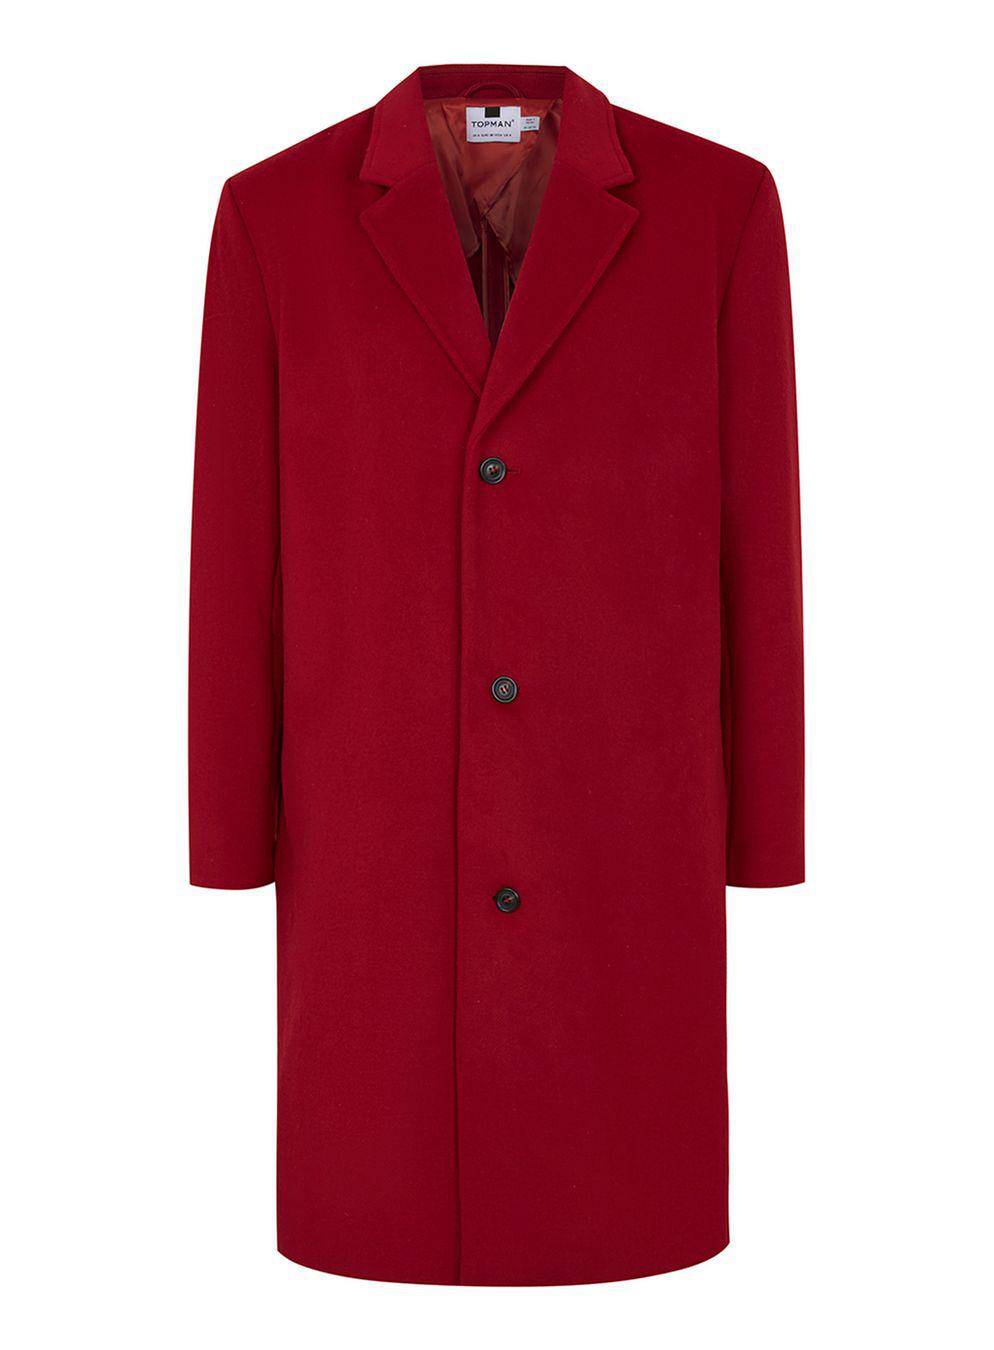 Topman Red Oversized Overcoat With Wool In Red For Men Lyst